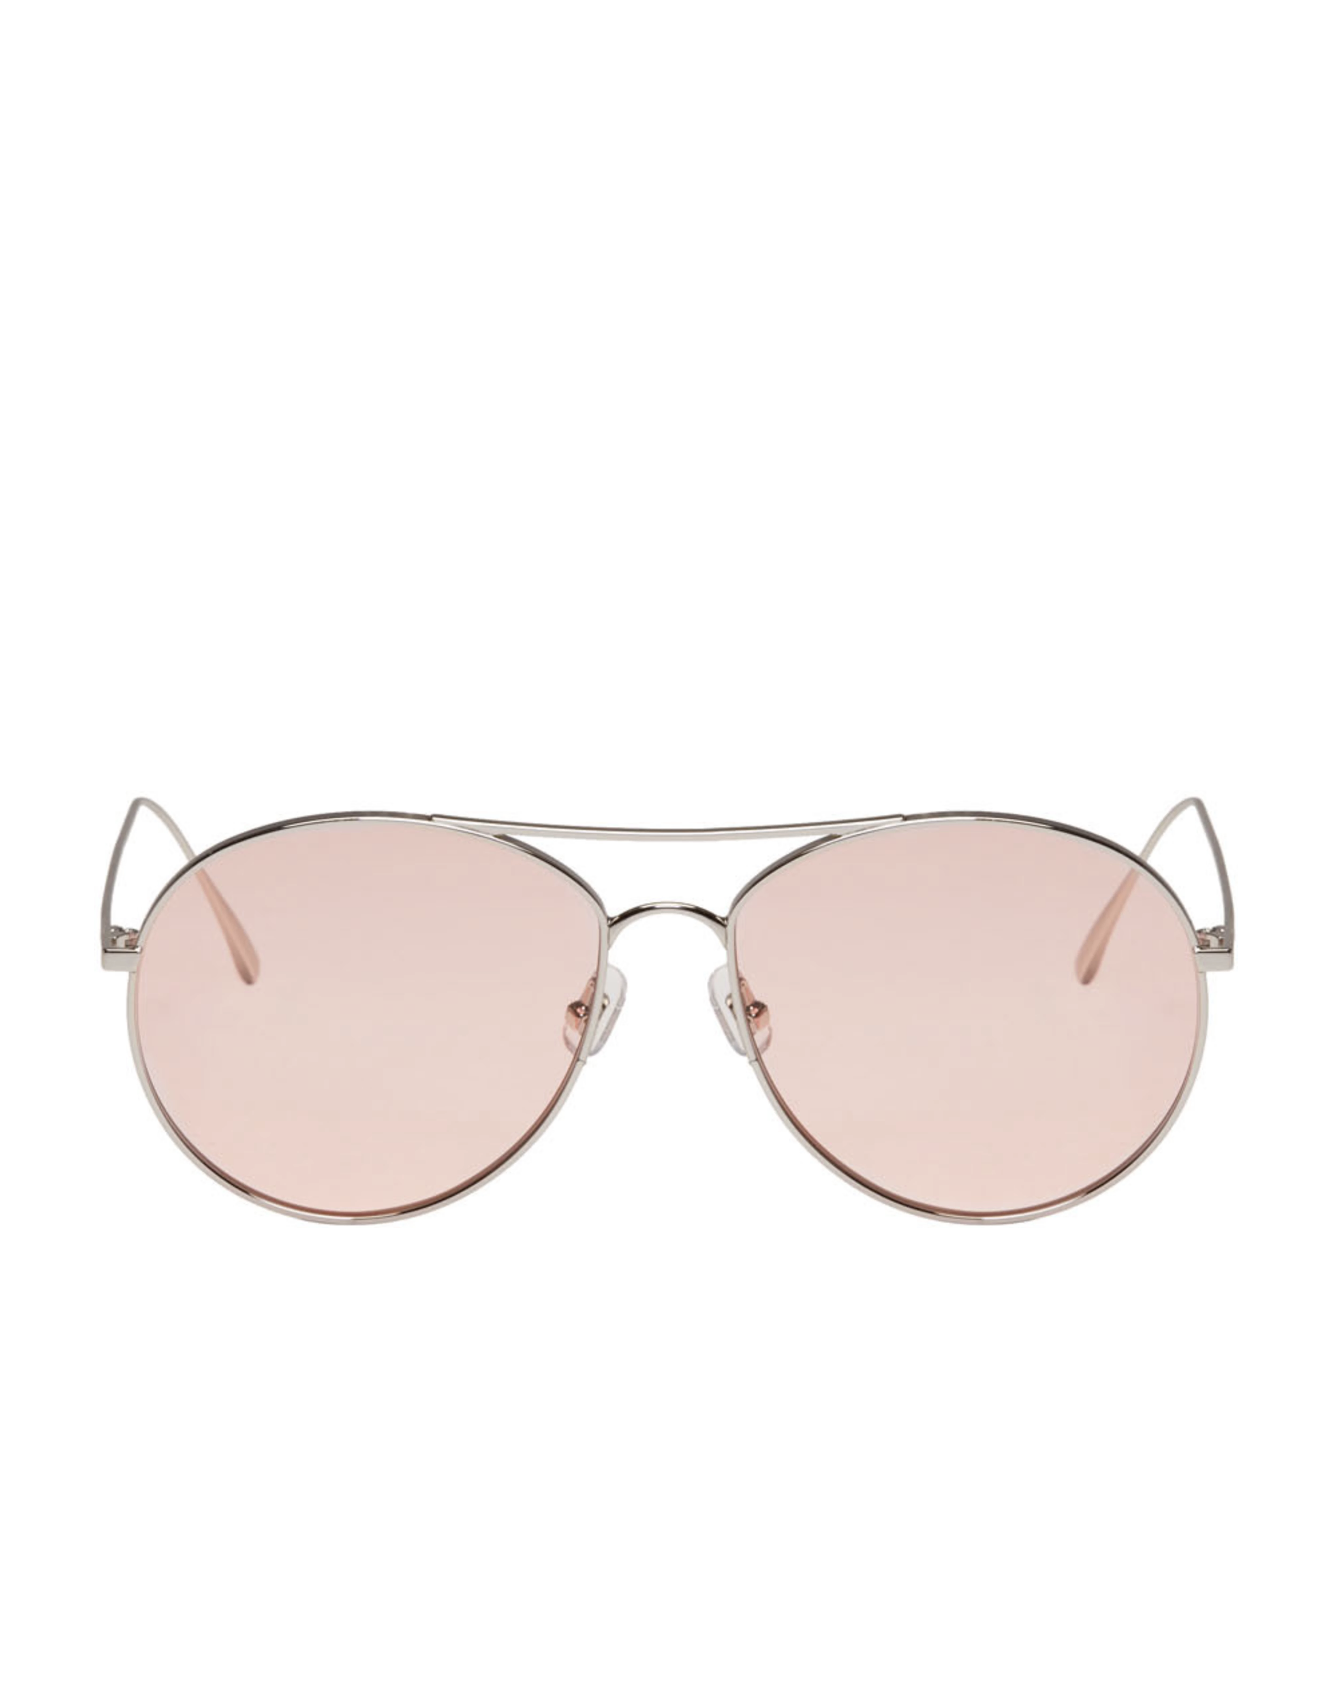 bdfbc3acafe40 Gentle Monster Silver Ranny Ring Sunglasses from SSENSE (men